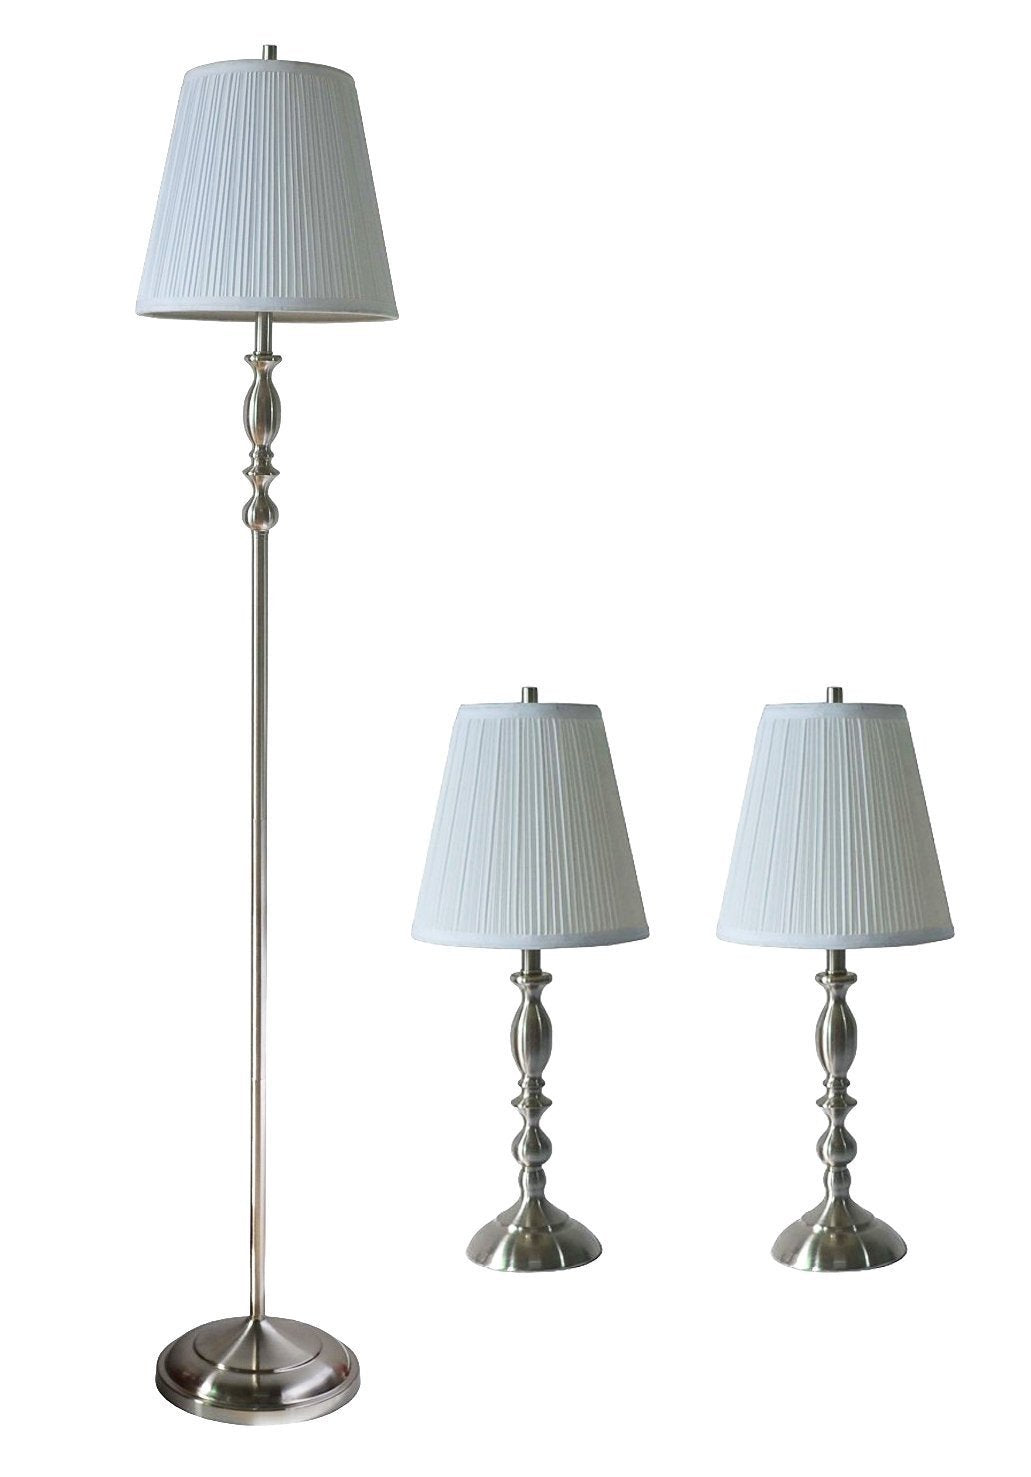 Eleanor 3 piece table and floor lamp set with shades urbanest eleanor 3 piece table and floor lamp set with shades geotapseo Image collections